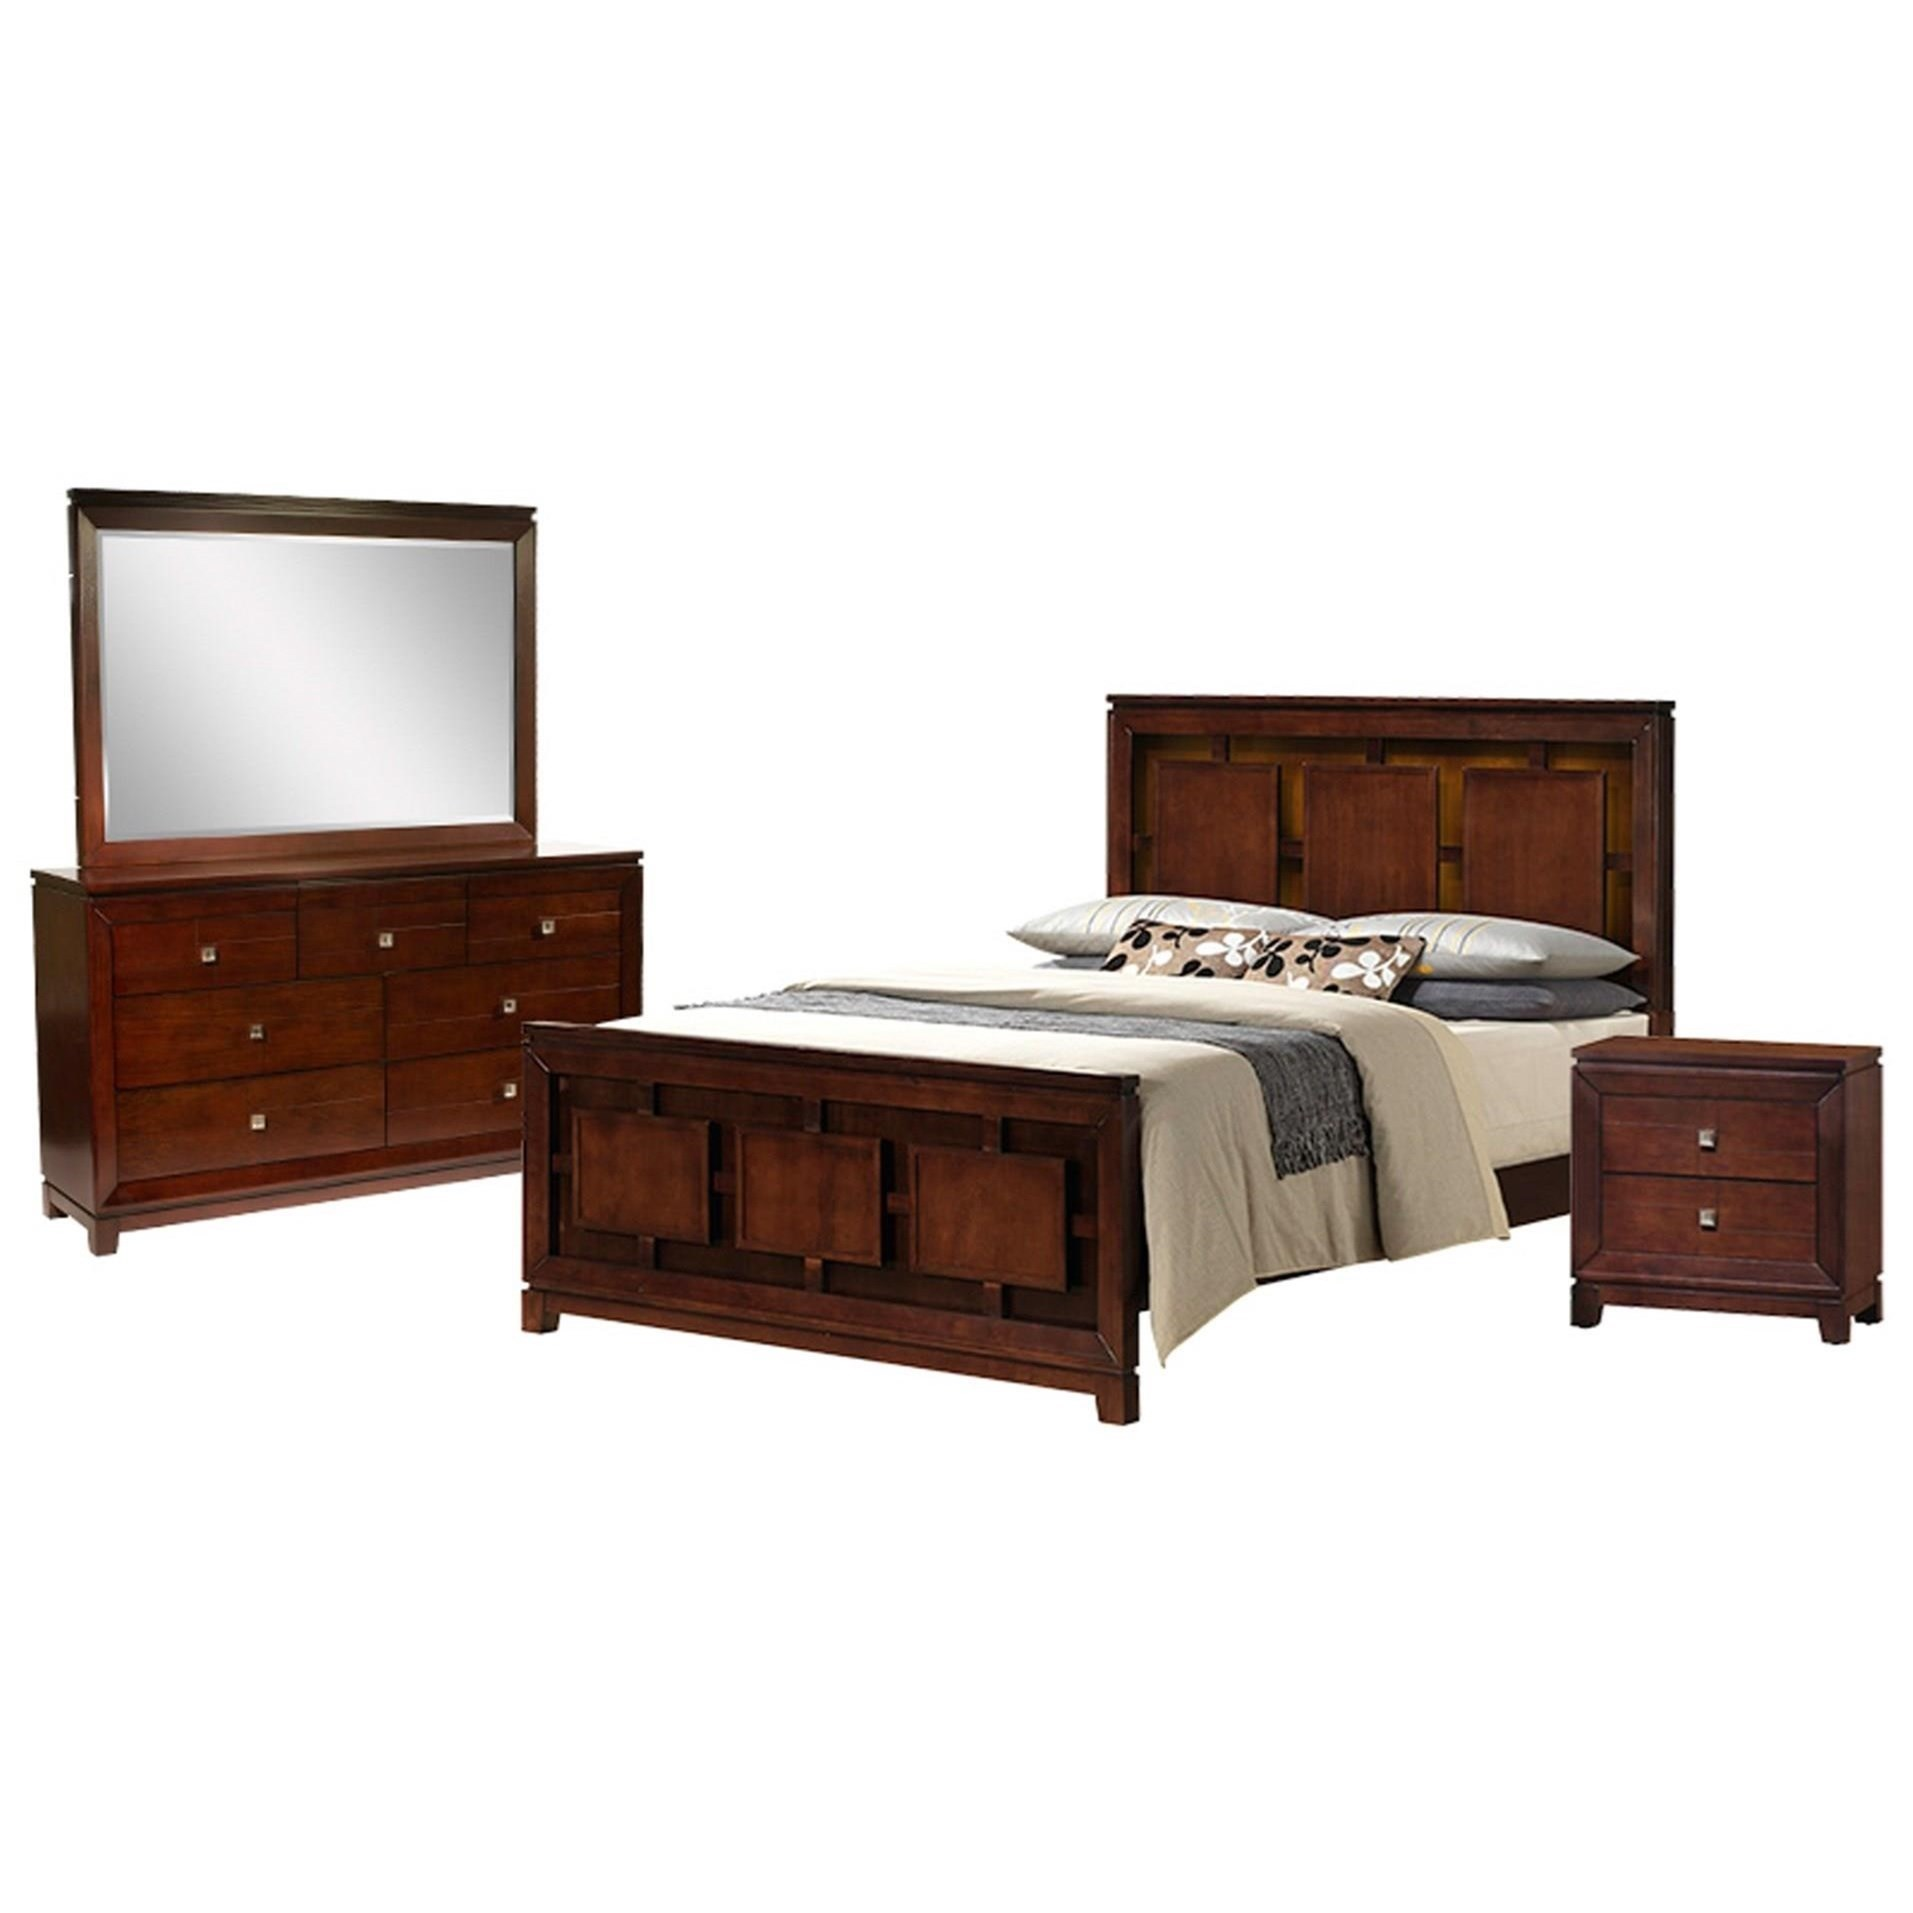 London 4-Piece King Bedroom Set by Elements International at Wilcox Furniture